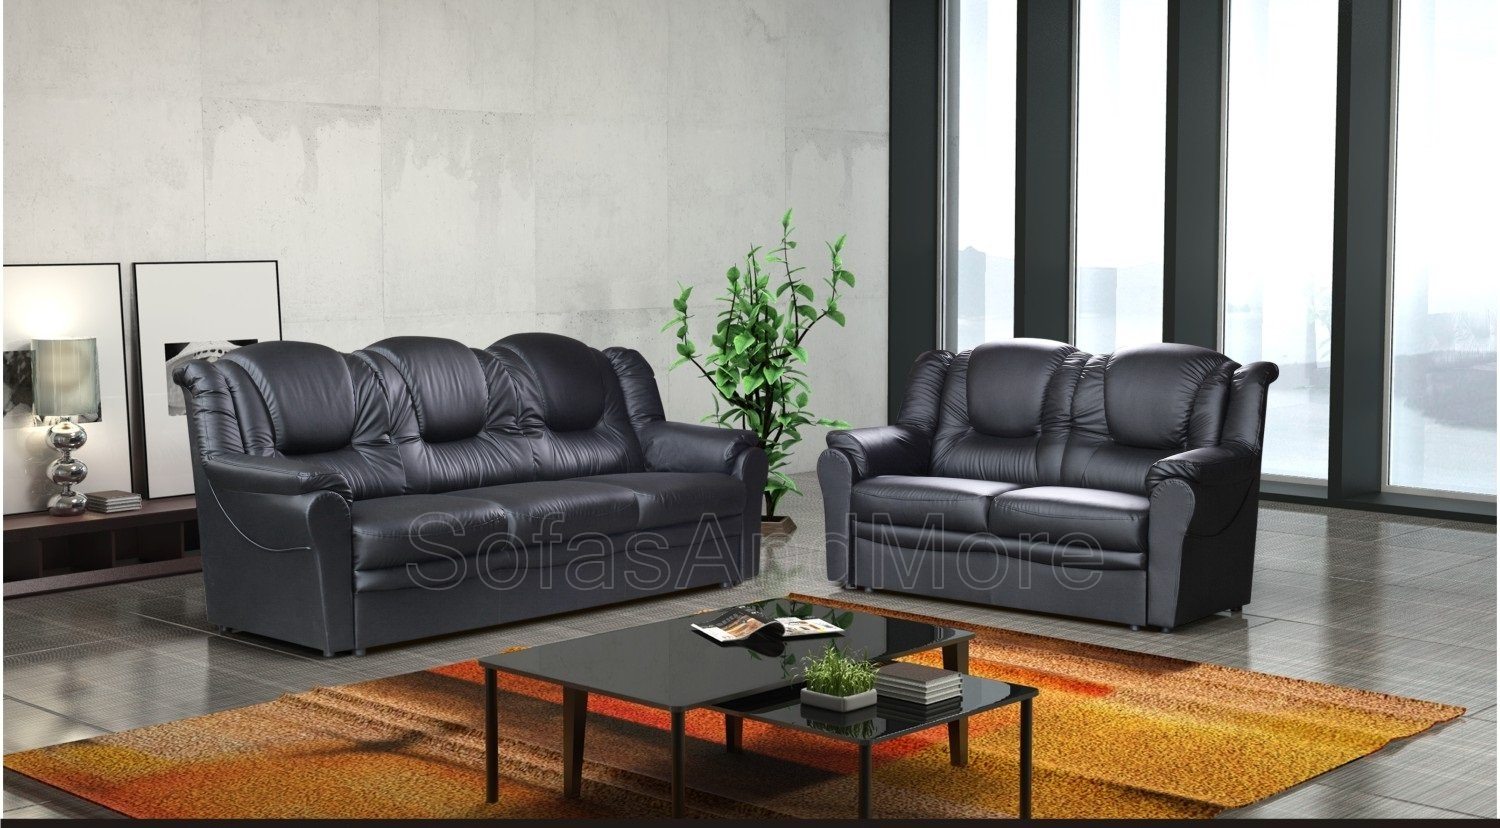 3 2 Seater Sofa Set Living Room Suite Faux Leather Black Foam Seats High  Back Settee Large Couch: Amazon.co.uk: Kitchen U0026 Home